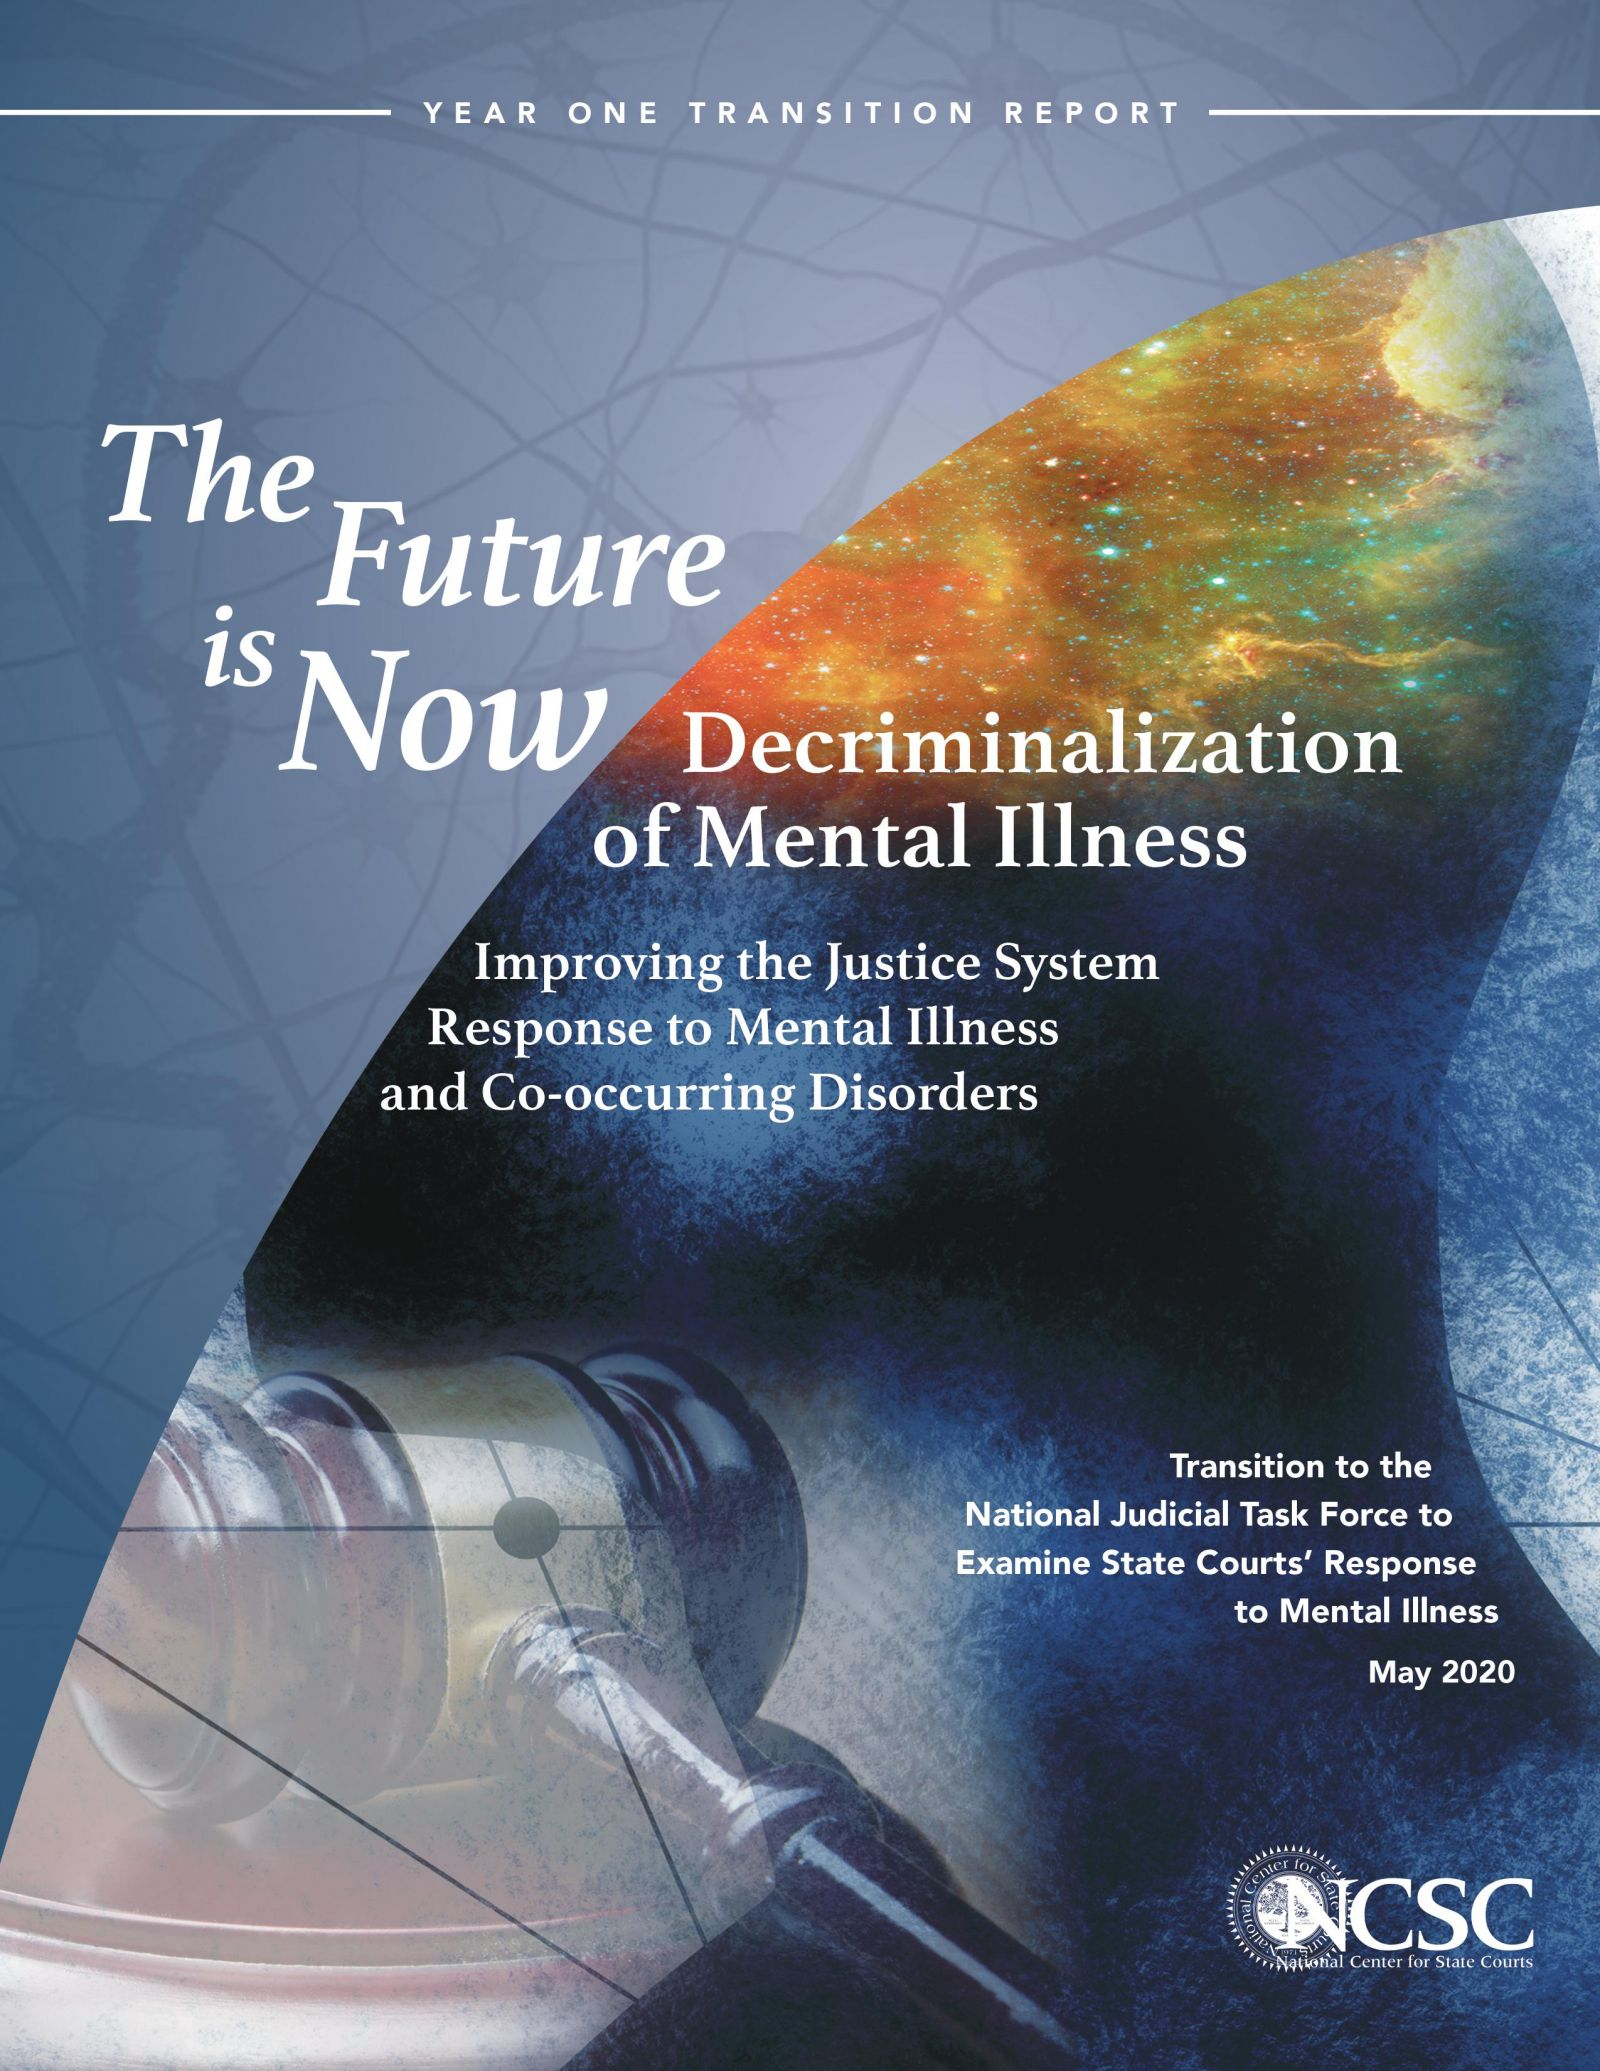 The Future is Now Decriminalization of Mental Illness Cover banner image